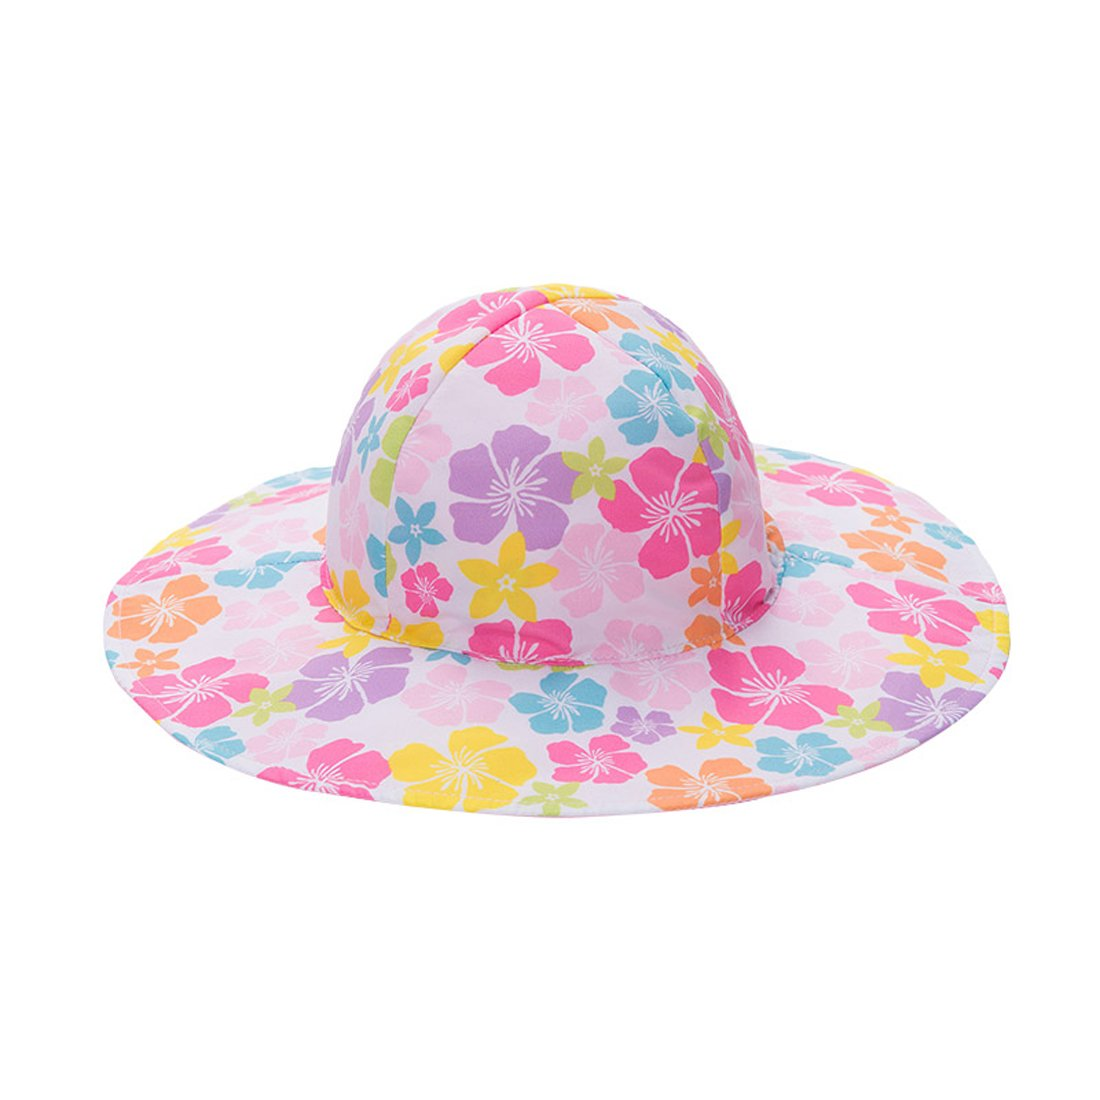 LoveKids Reversible Sun Protection Hat for Girls and Boys(A28007Pink)